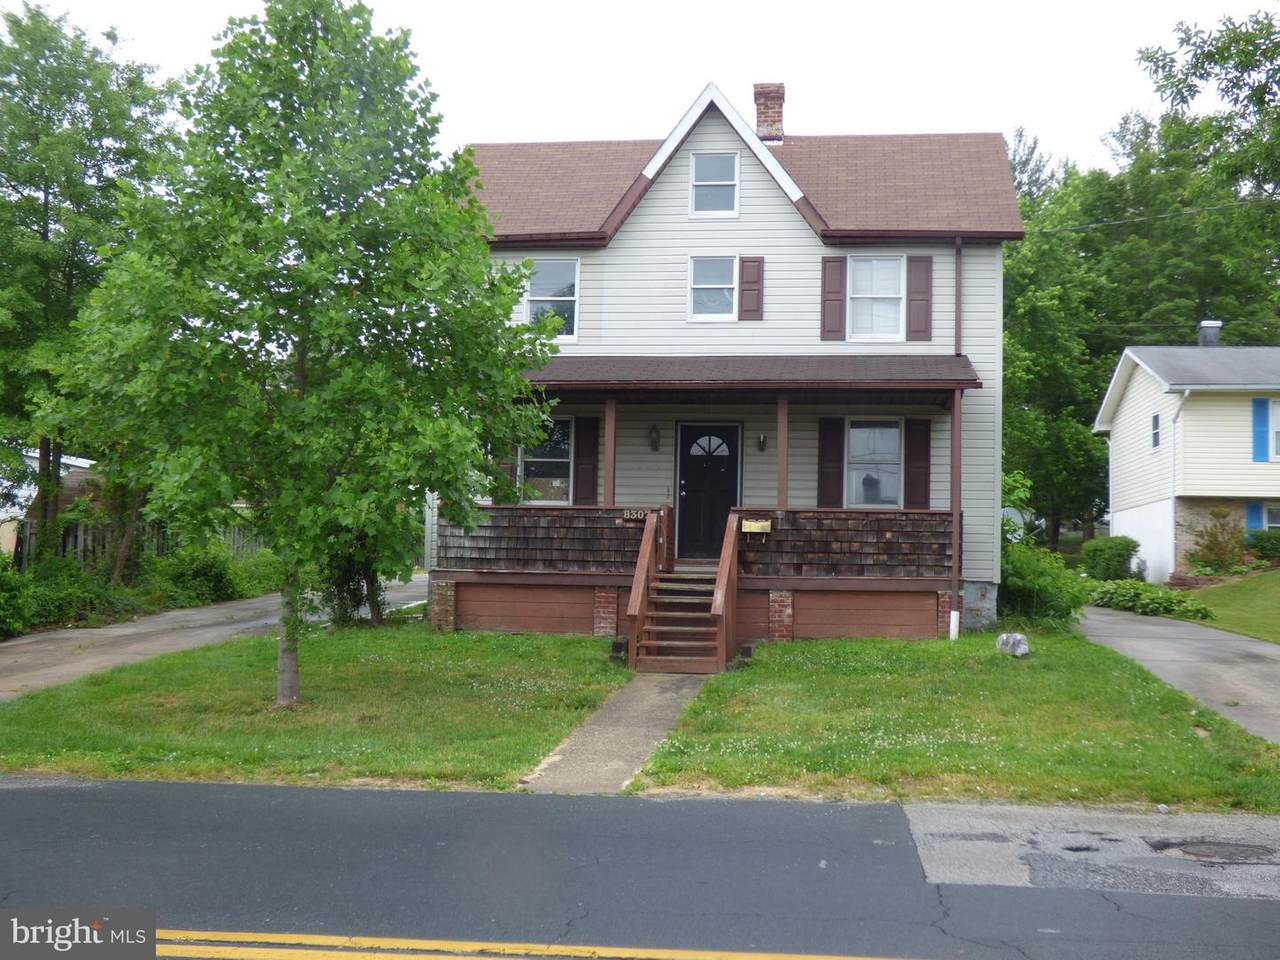 8307 Old Harford Road - Photo 1